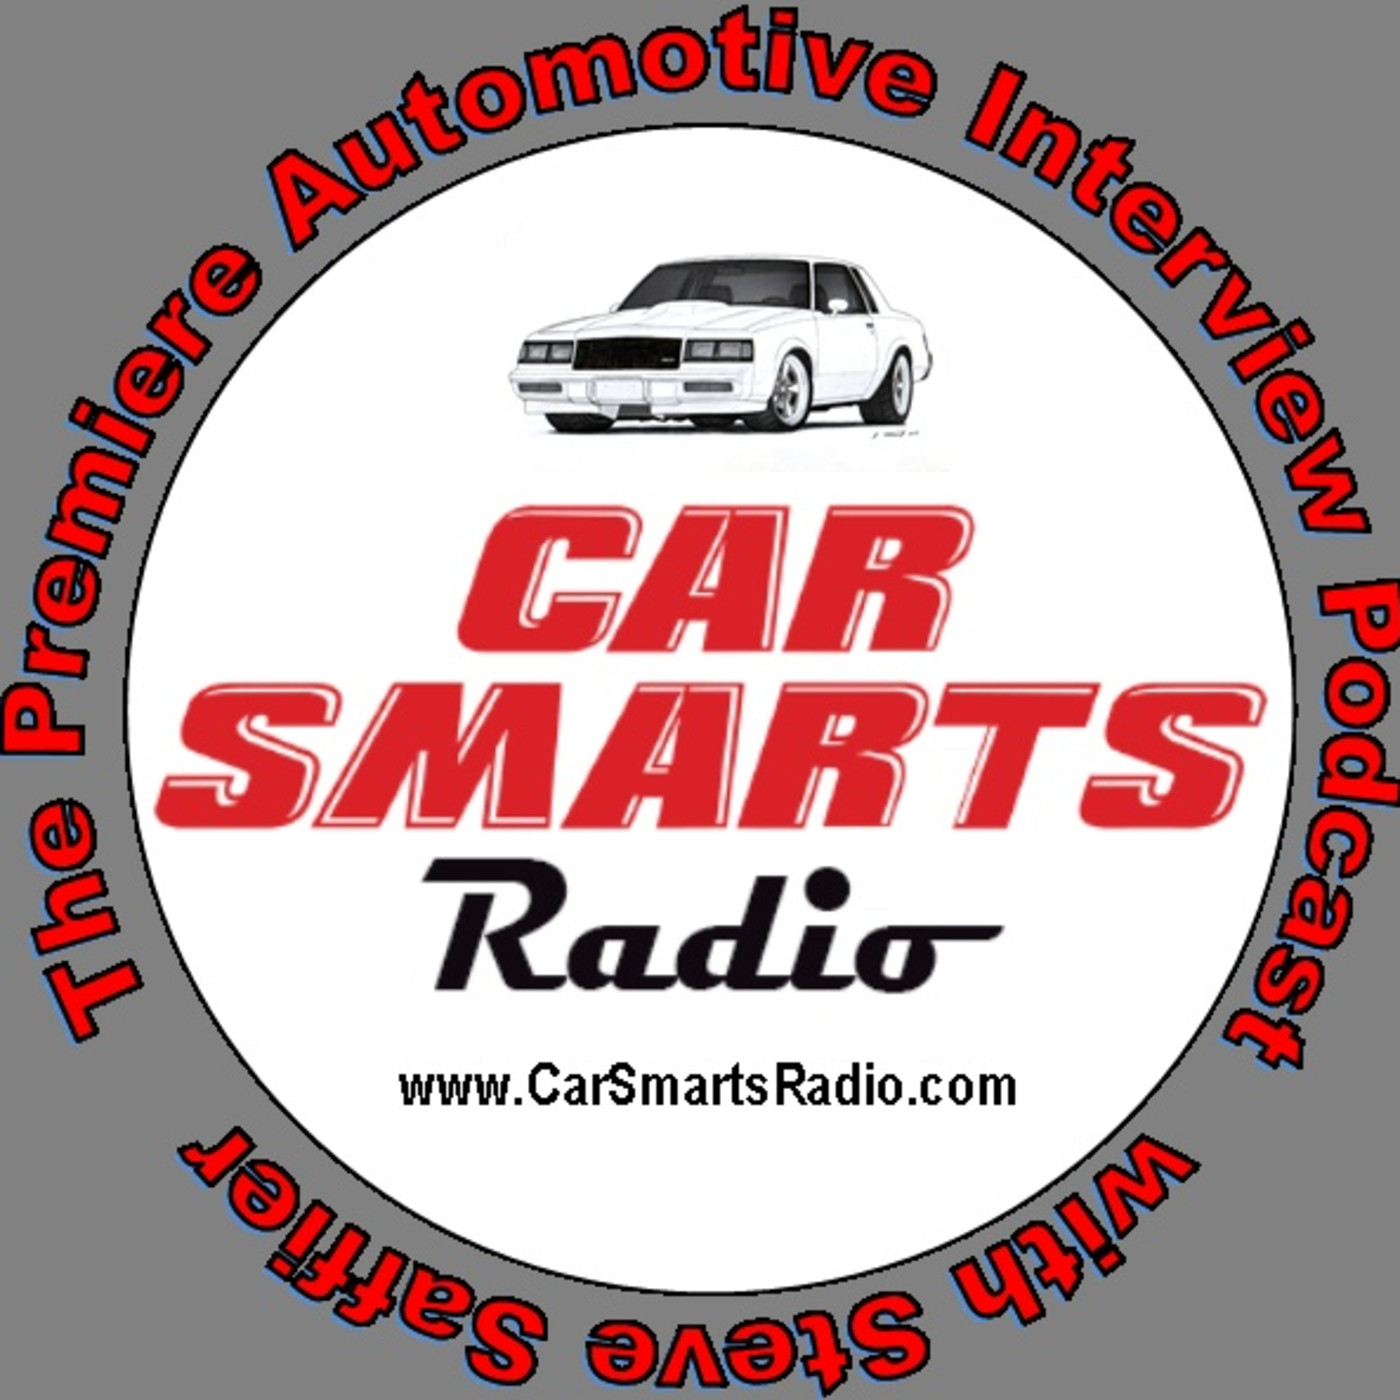 CarSmarts Radio - Iron Trap Garage